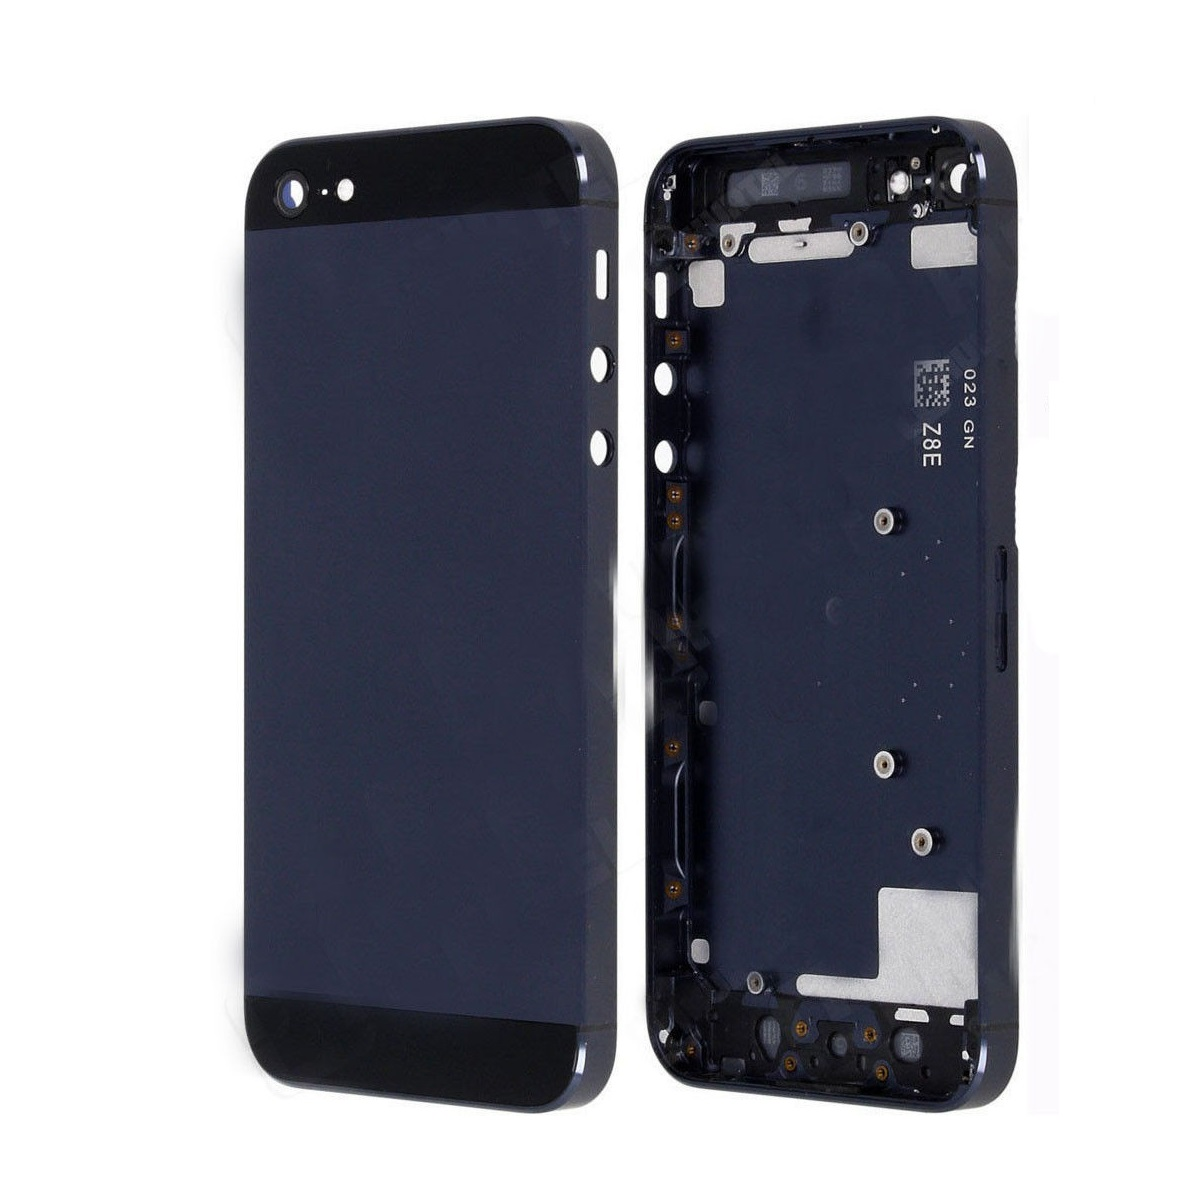 Iphone5 back cover black without imei